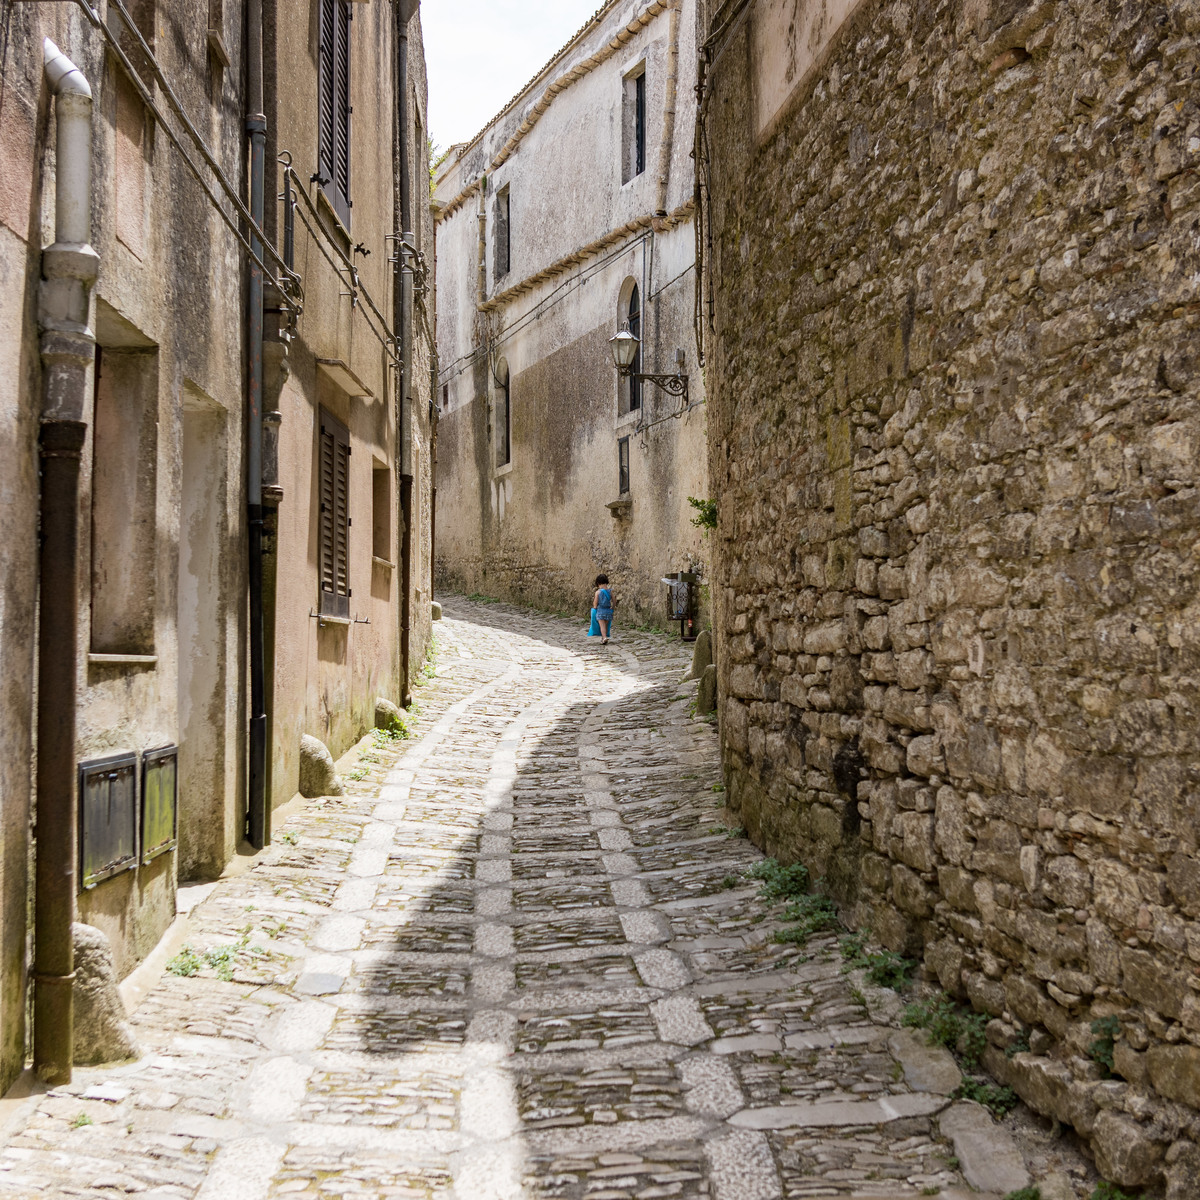 Trudging up a hill in Erice